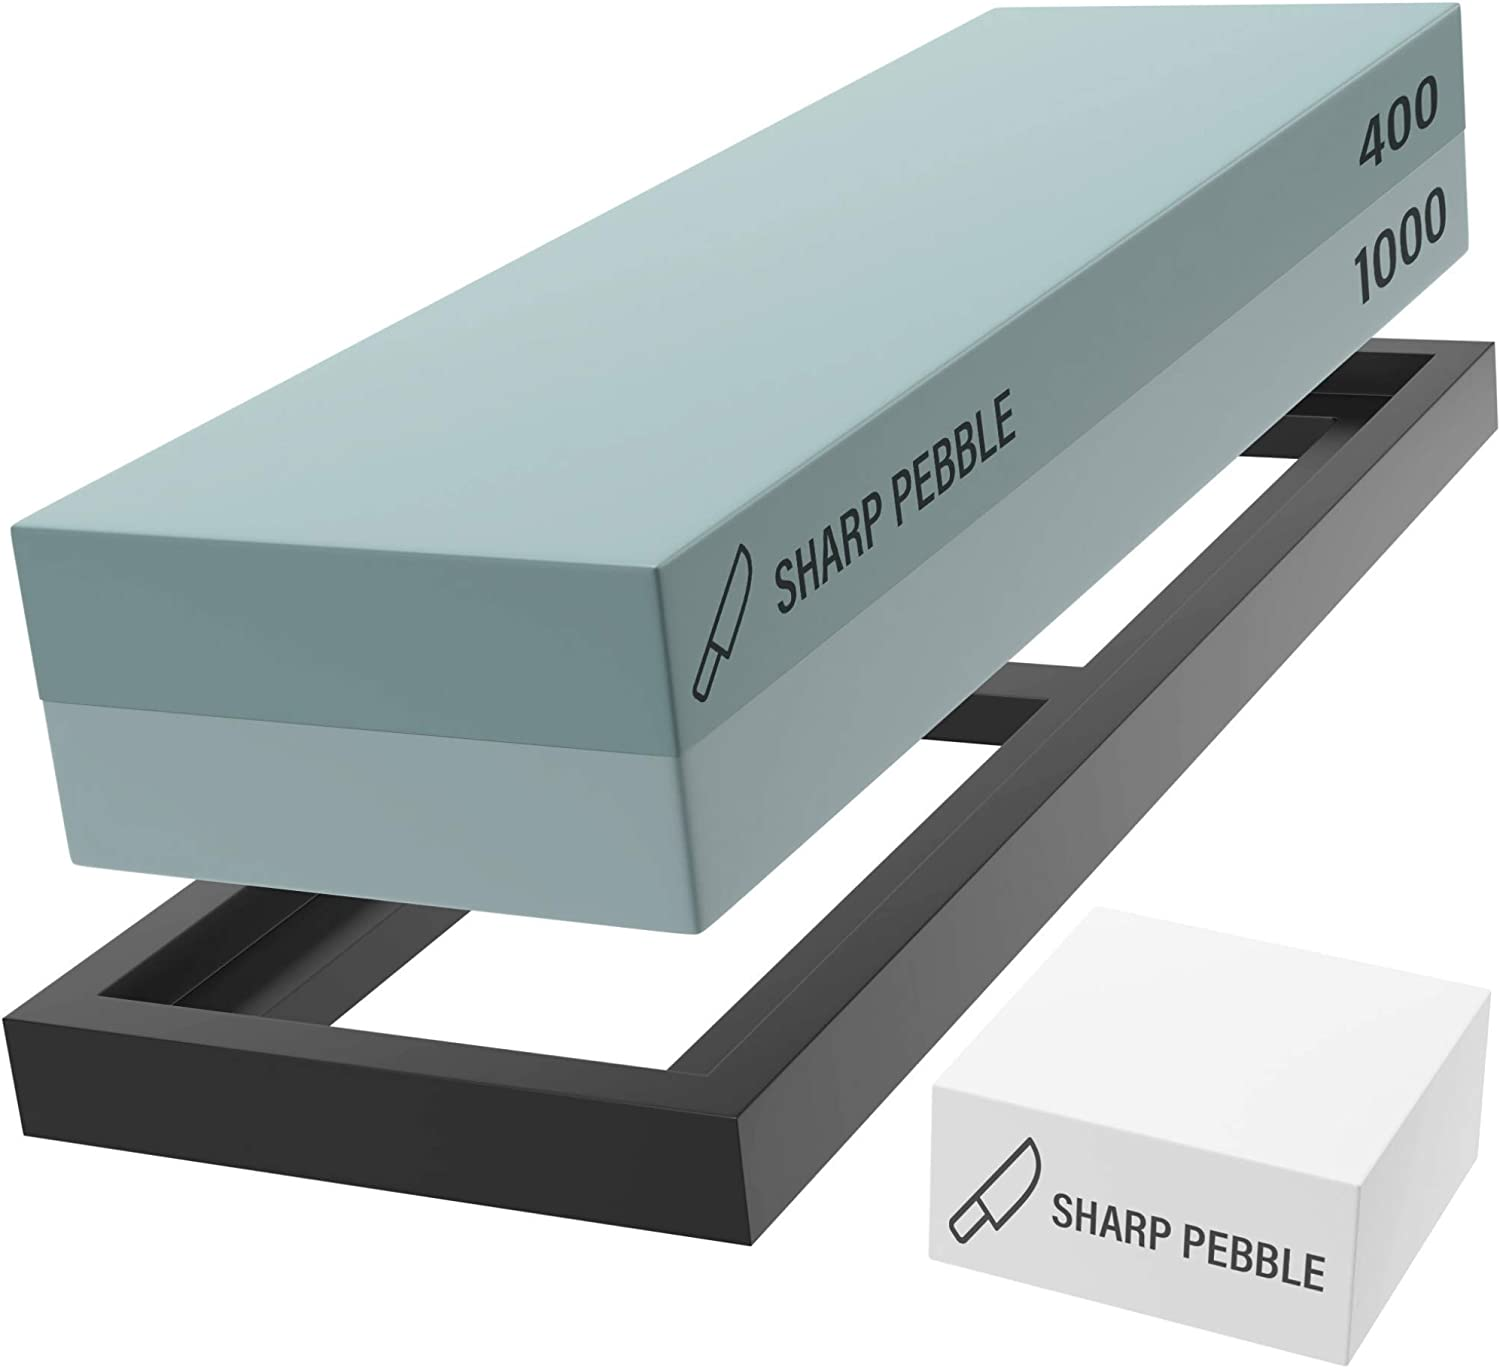 Sharp Pebble Premium Whetstone Sharpening Stone 2 Side Grit 400/1000-Whetstone Knife Sharpener with Flattening Stone & NonSlip R